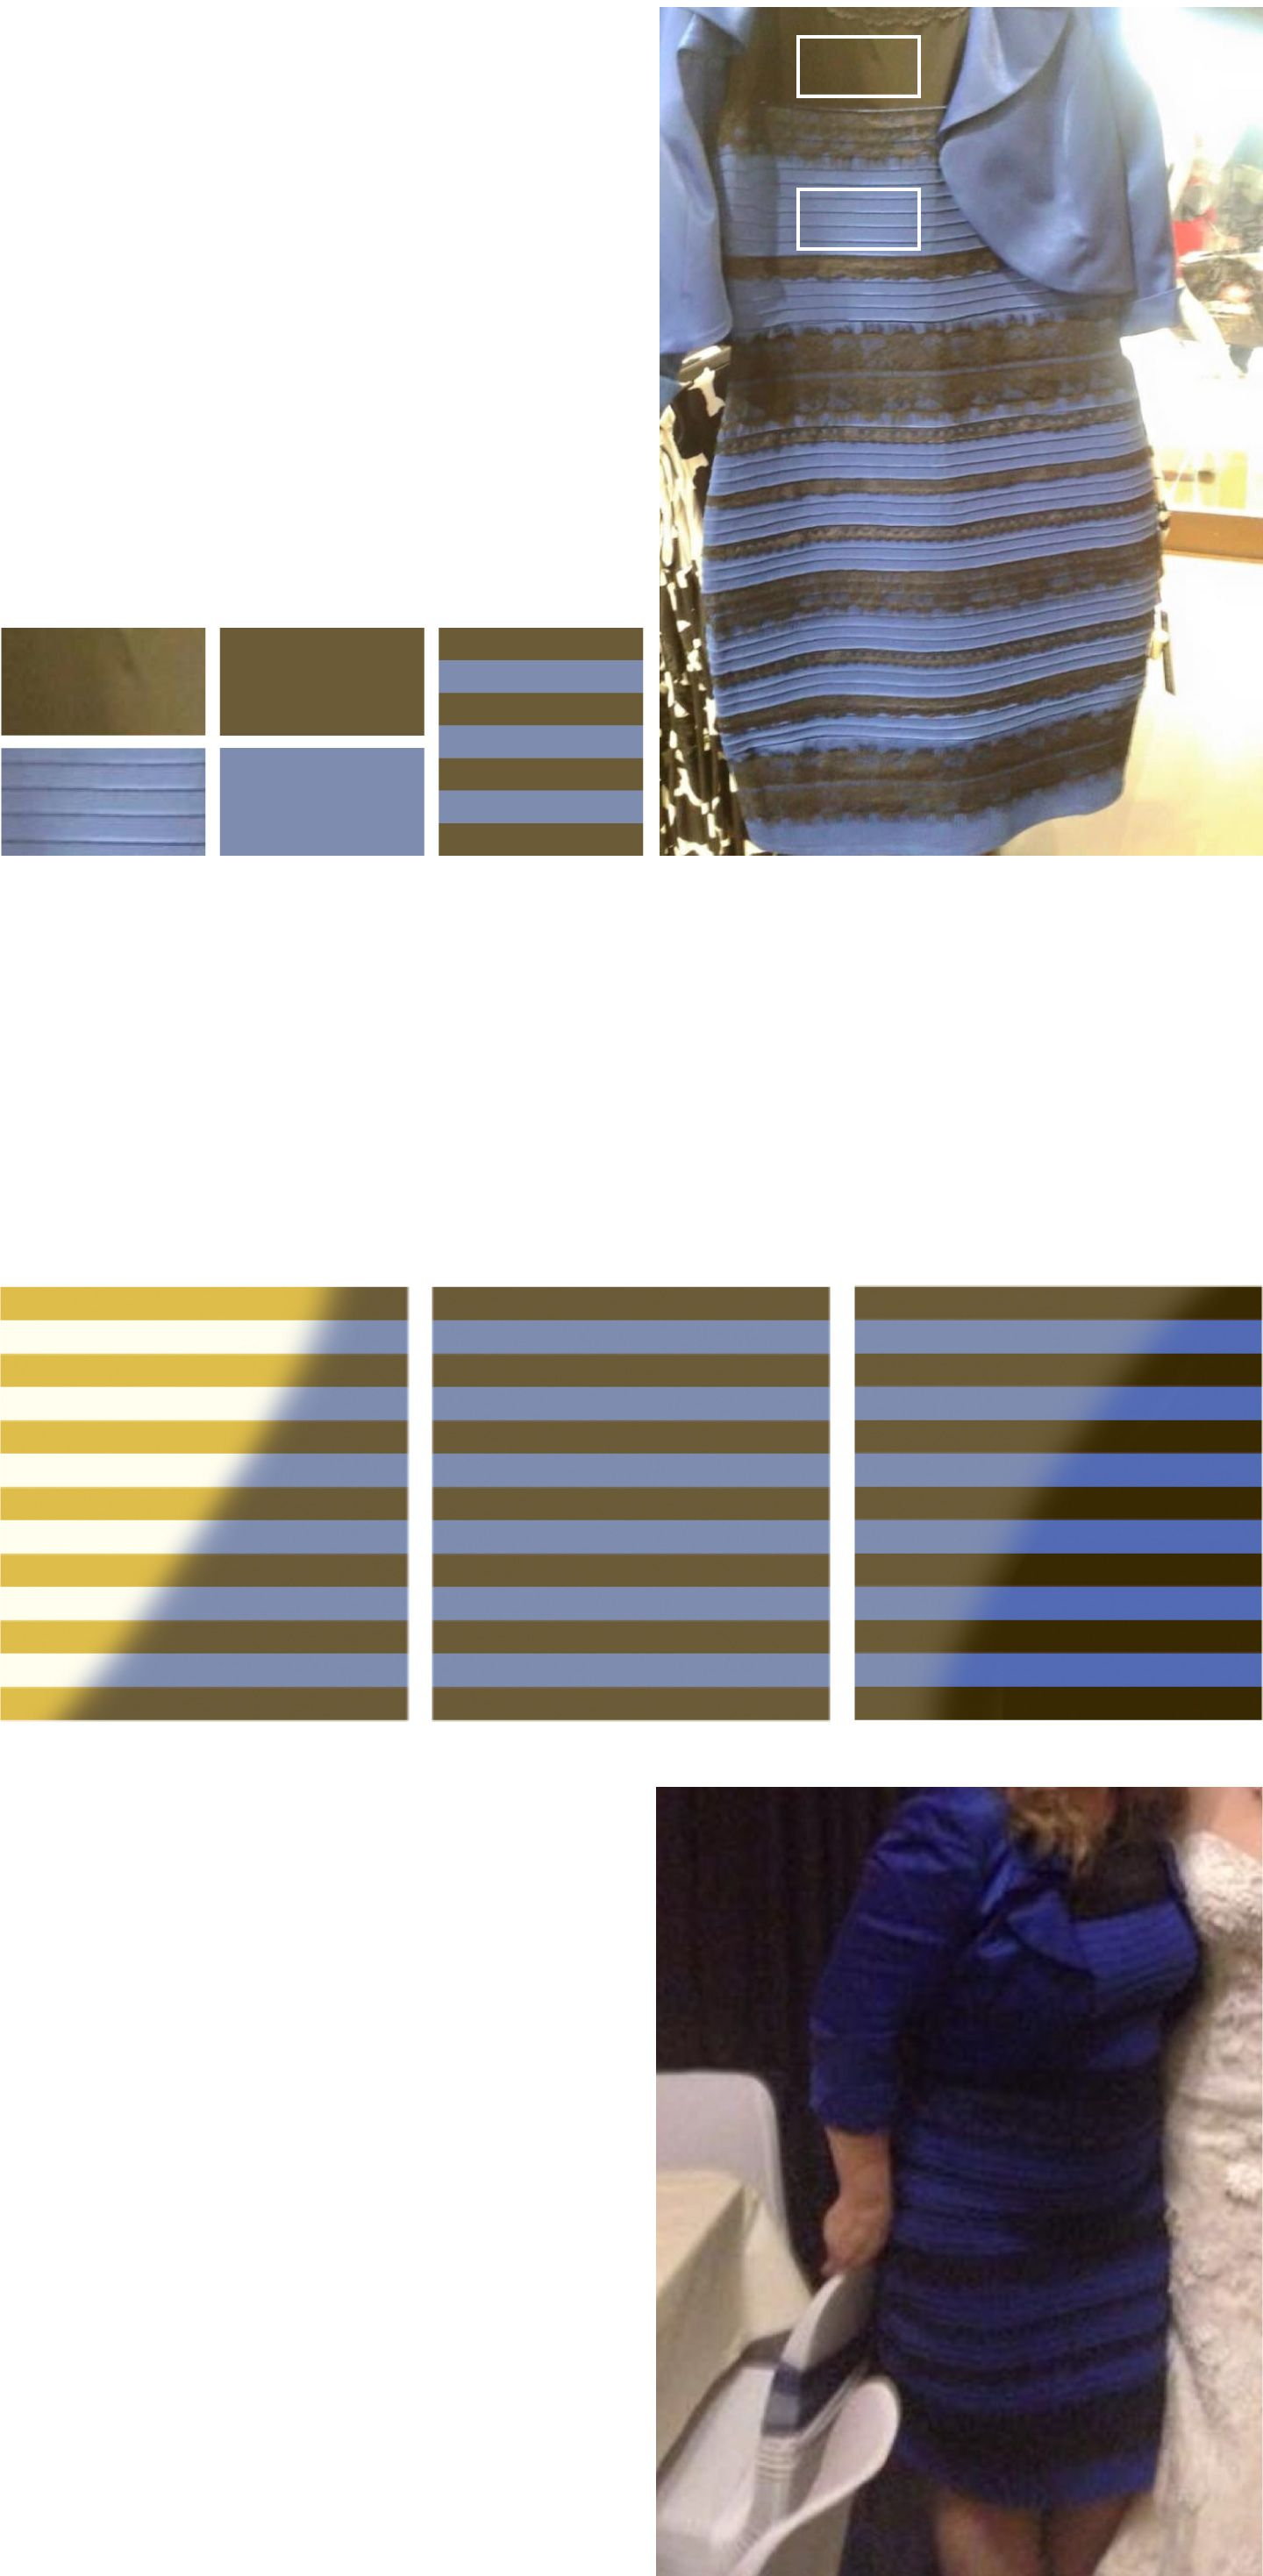 Is That Dress White And Gold Or Blue And Black Blue Black White Gold White Gold Dress Blue And Gold Dress